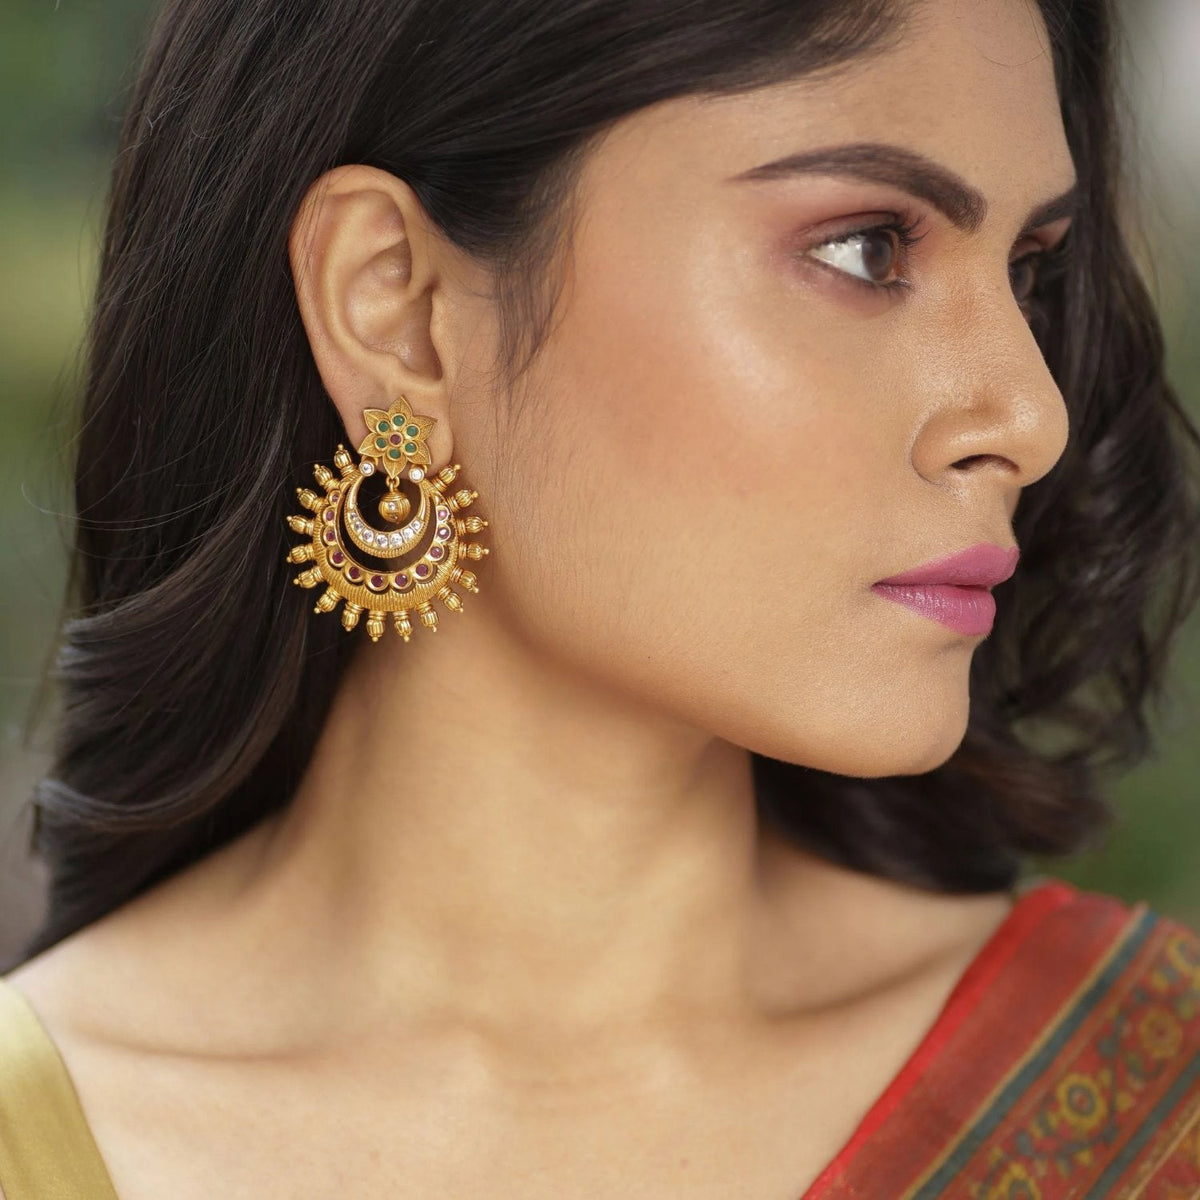 Tarang Antique Earrings